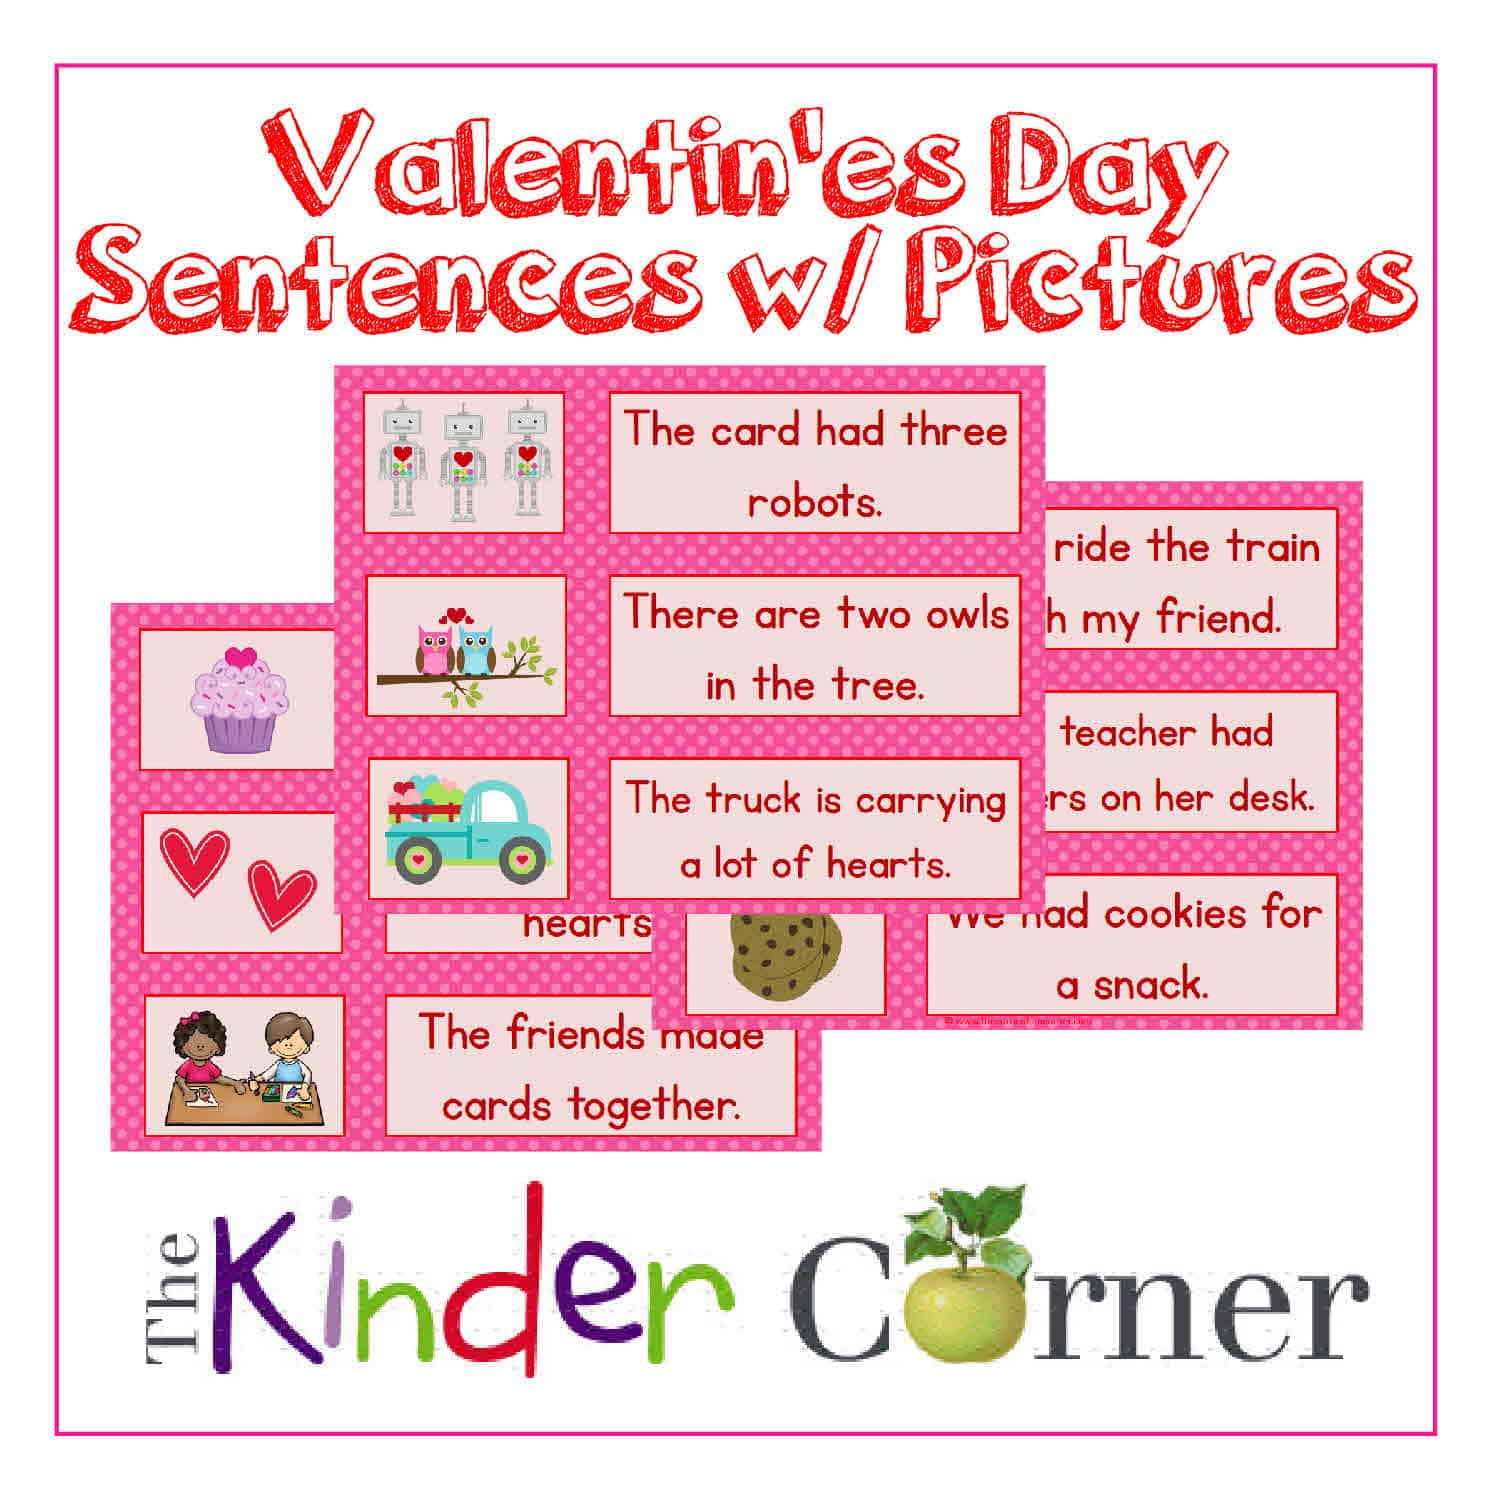 Valentine's Day Sentences w/ Pictures